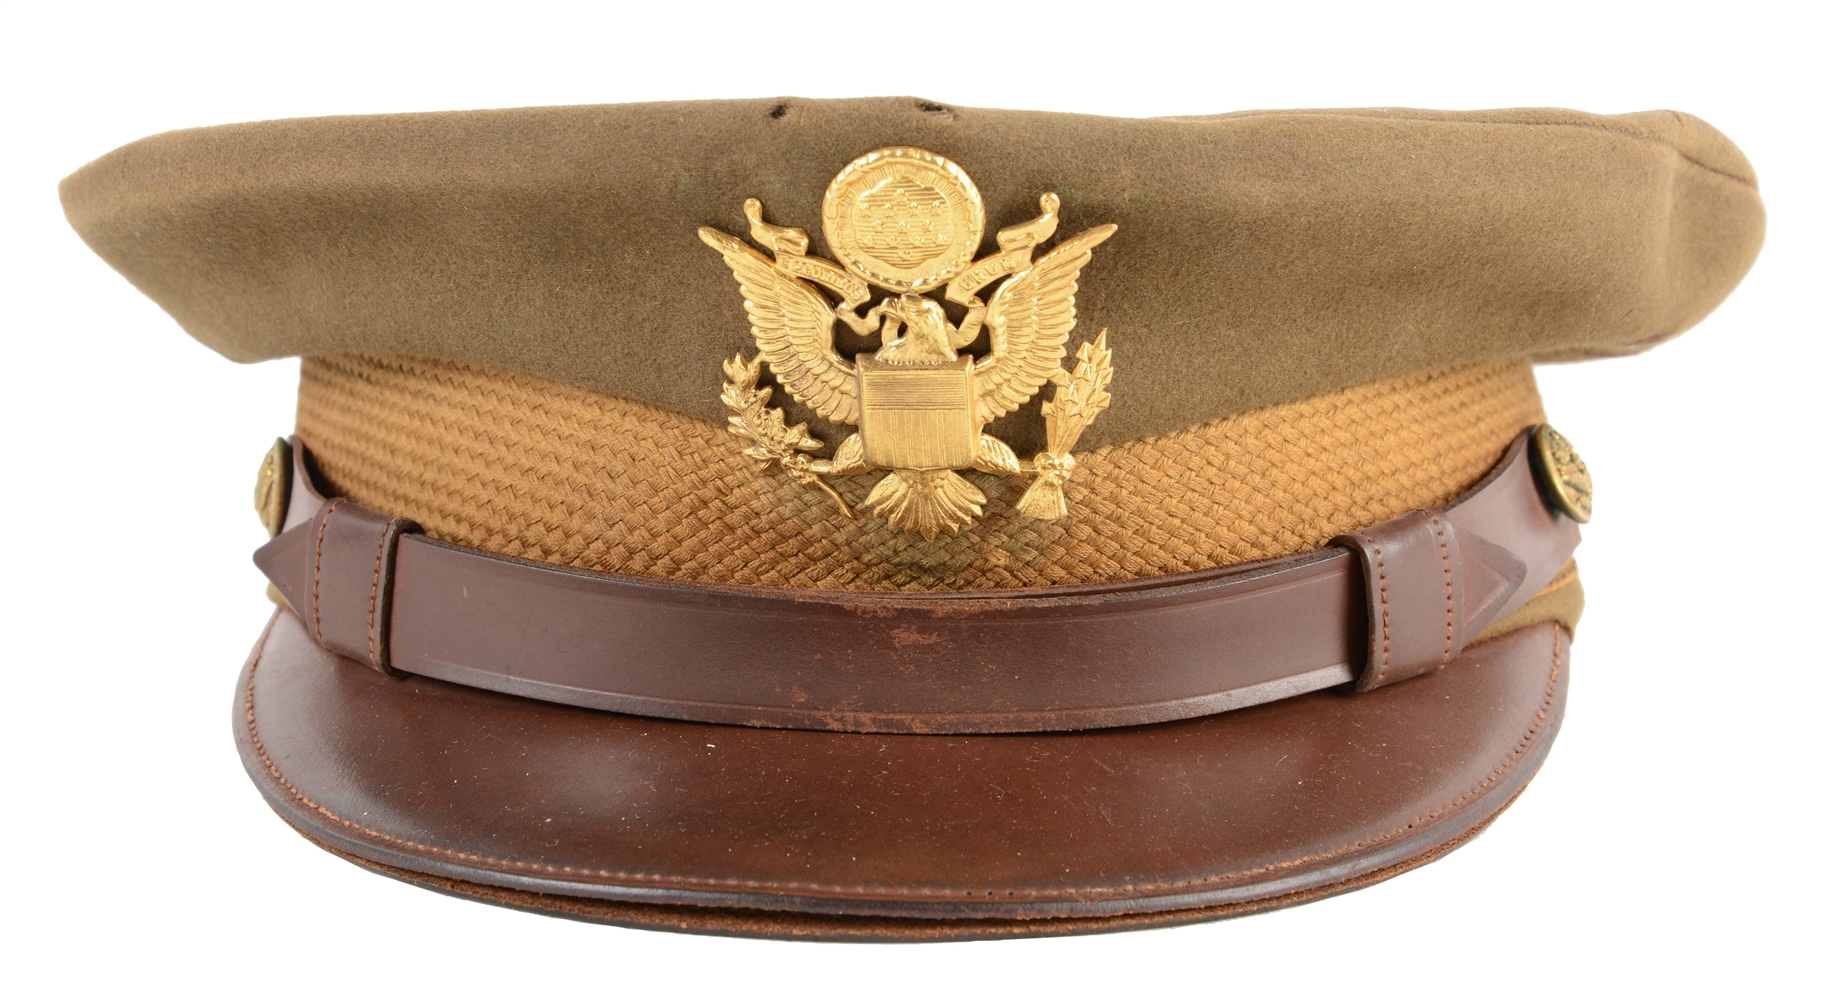 WWII U.S. Army Officers Visor Cap Worn By General George Kenney.